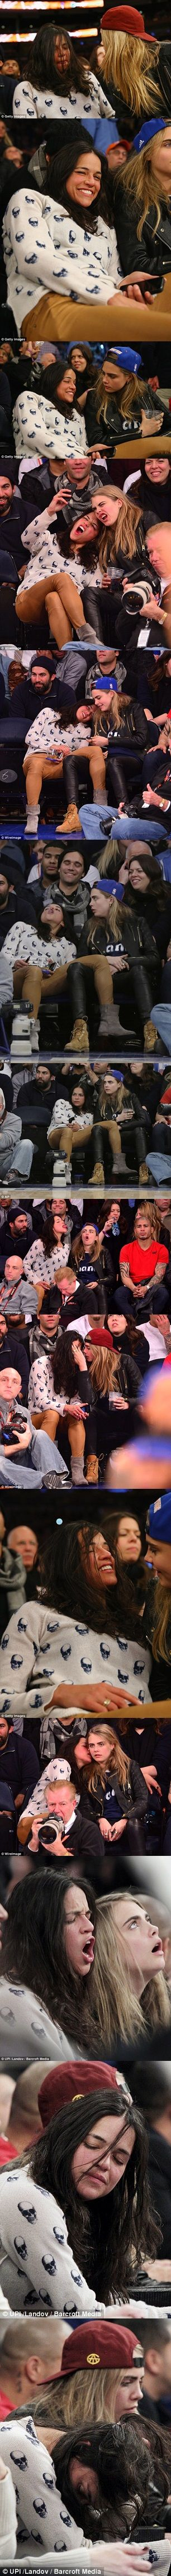 Worse for wear Michelle Rodriguez gets amorous with model Cara Delevingne as they kiss and cuddle courtside at basketball game